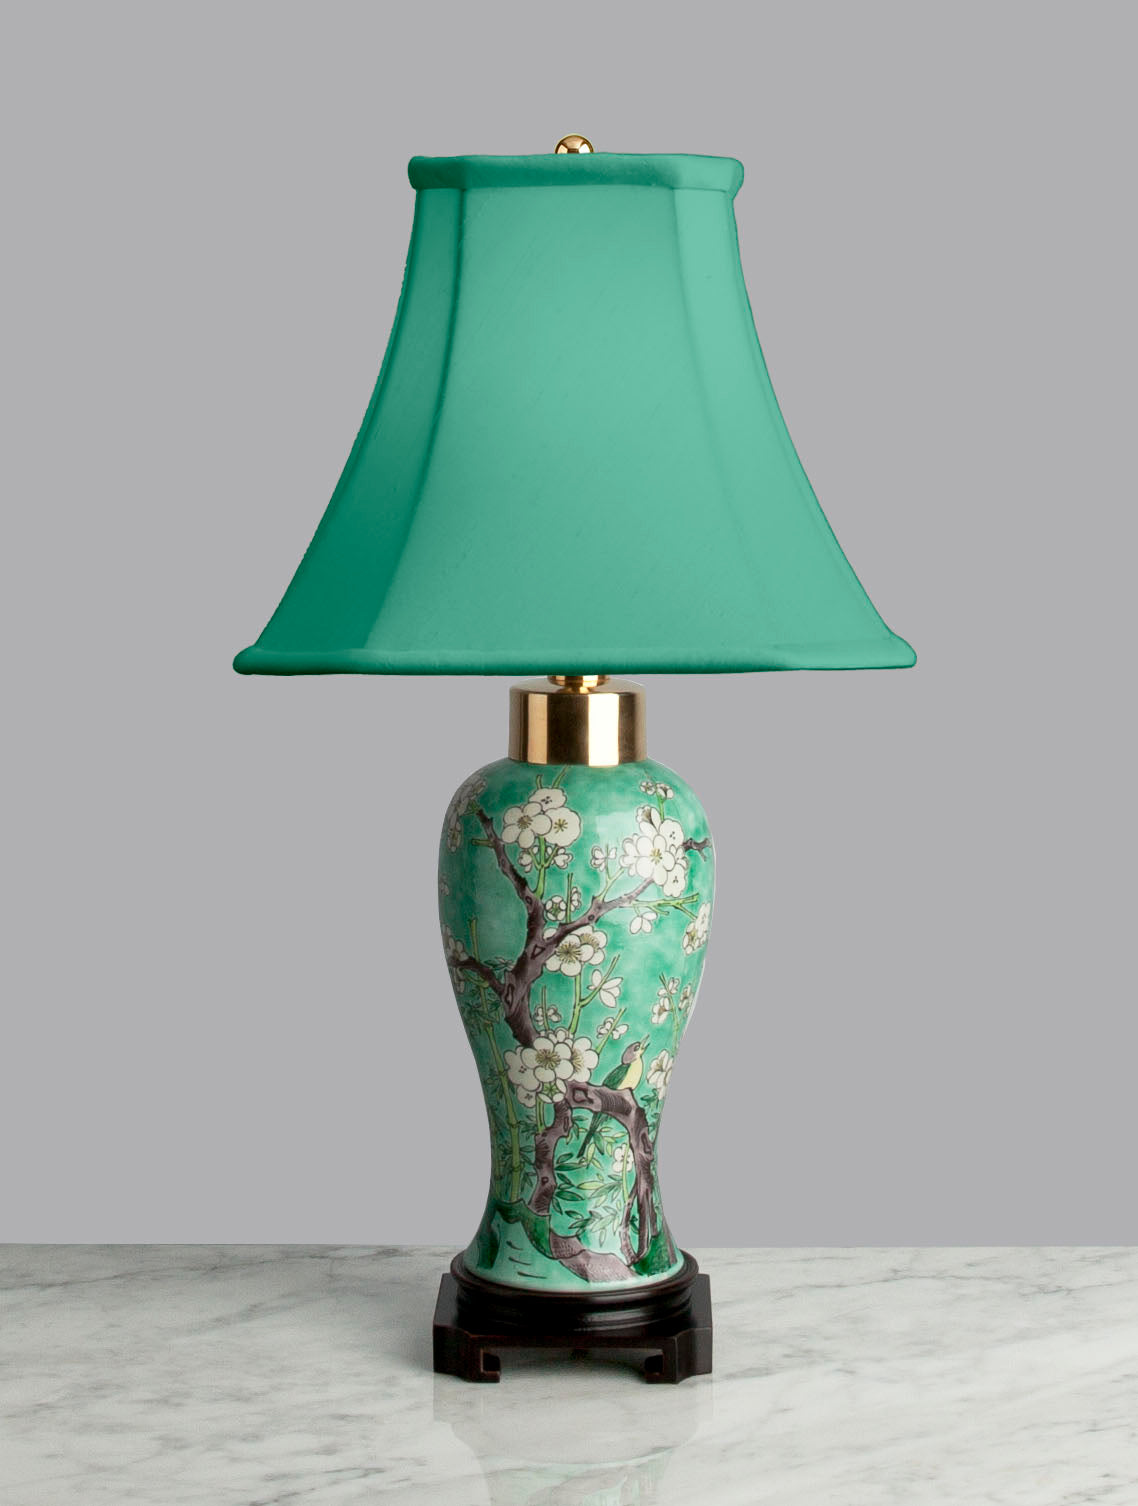 G061 A 19th Century Chinese Lamp With a Message Of Springtime Renewal - Circa 1870